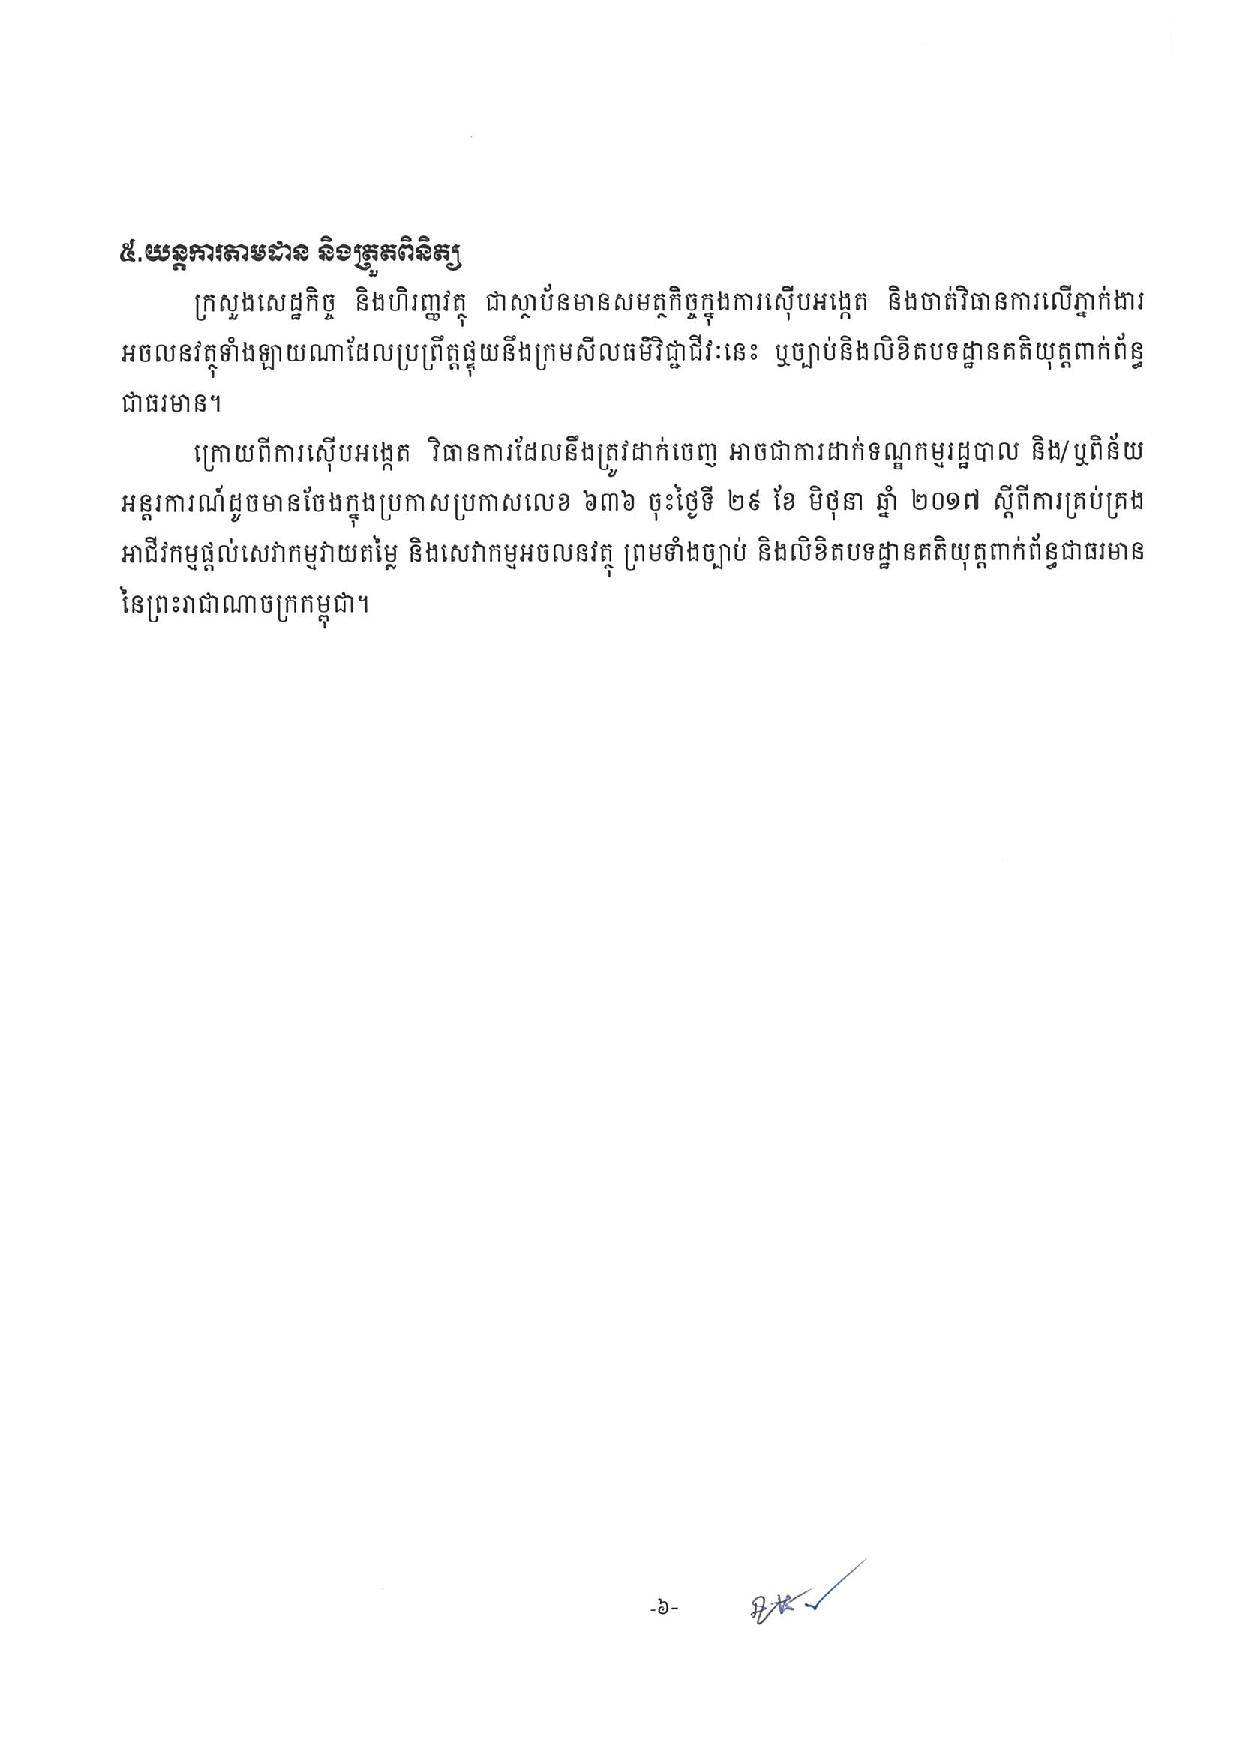 document-page-016.jpg